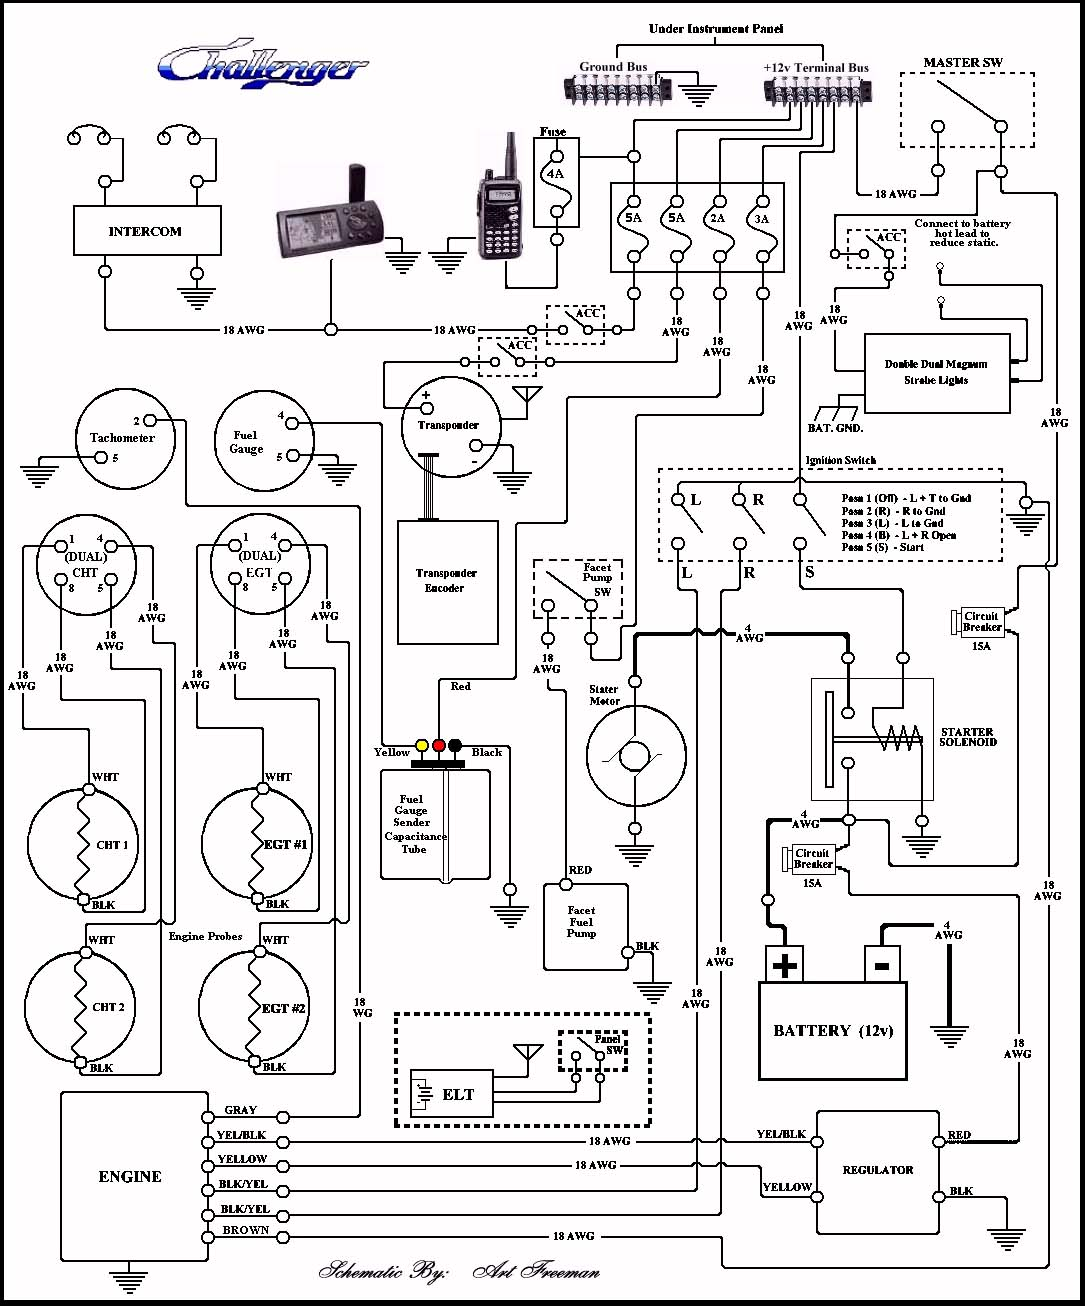 Schem_Analog basic panel wiring diagram wiring diagram simonand basic wiring diagram at gsmx.co